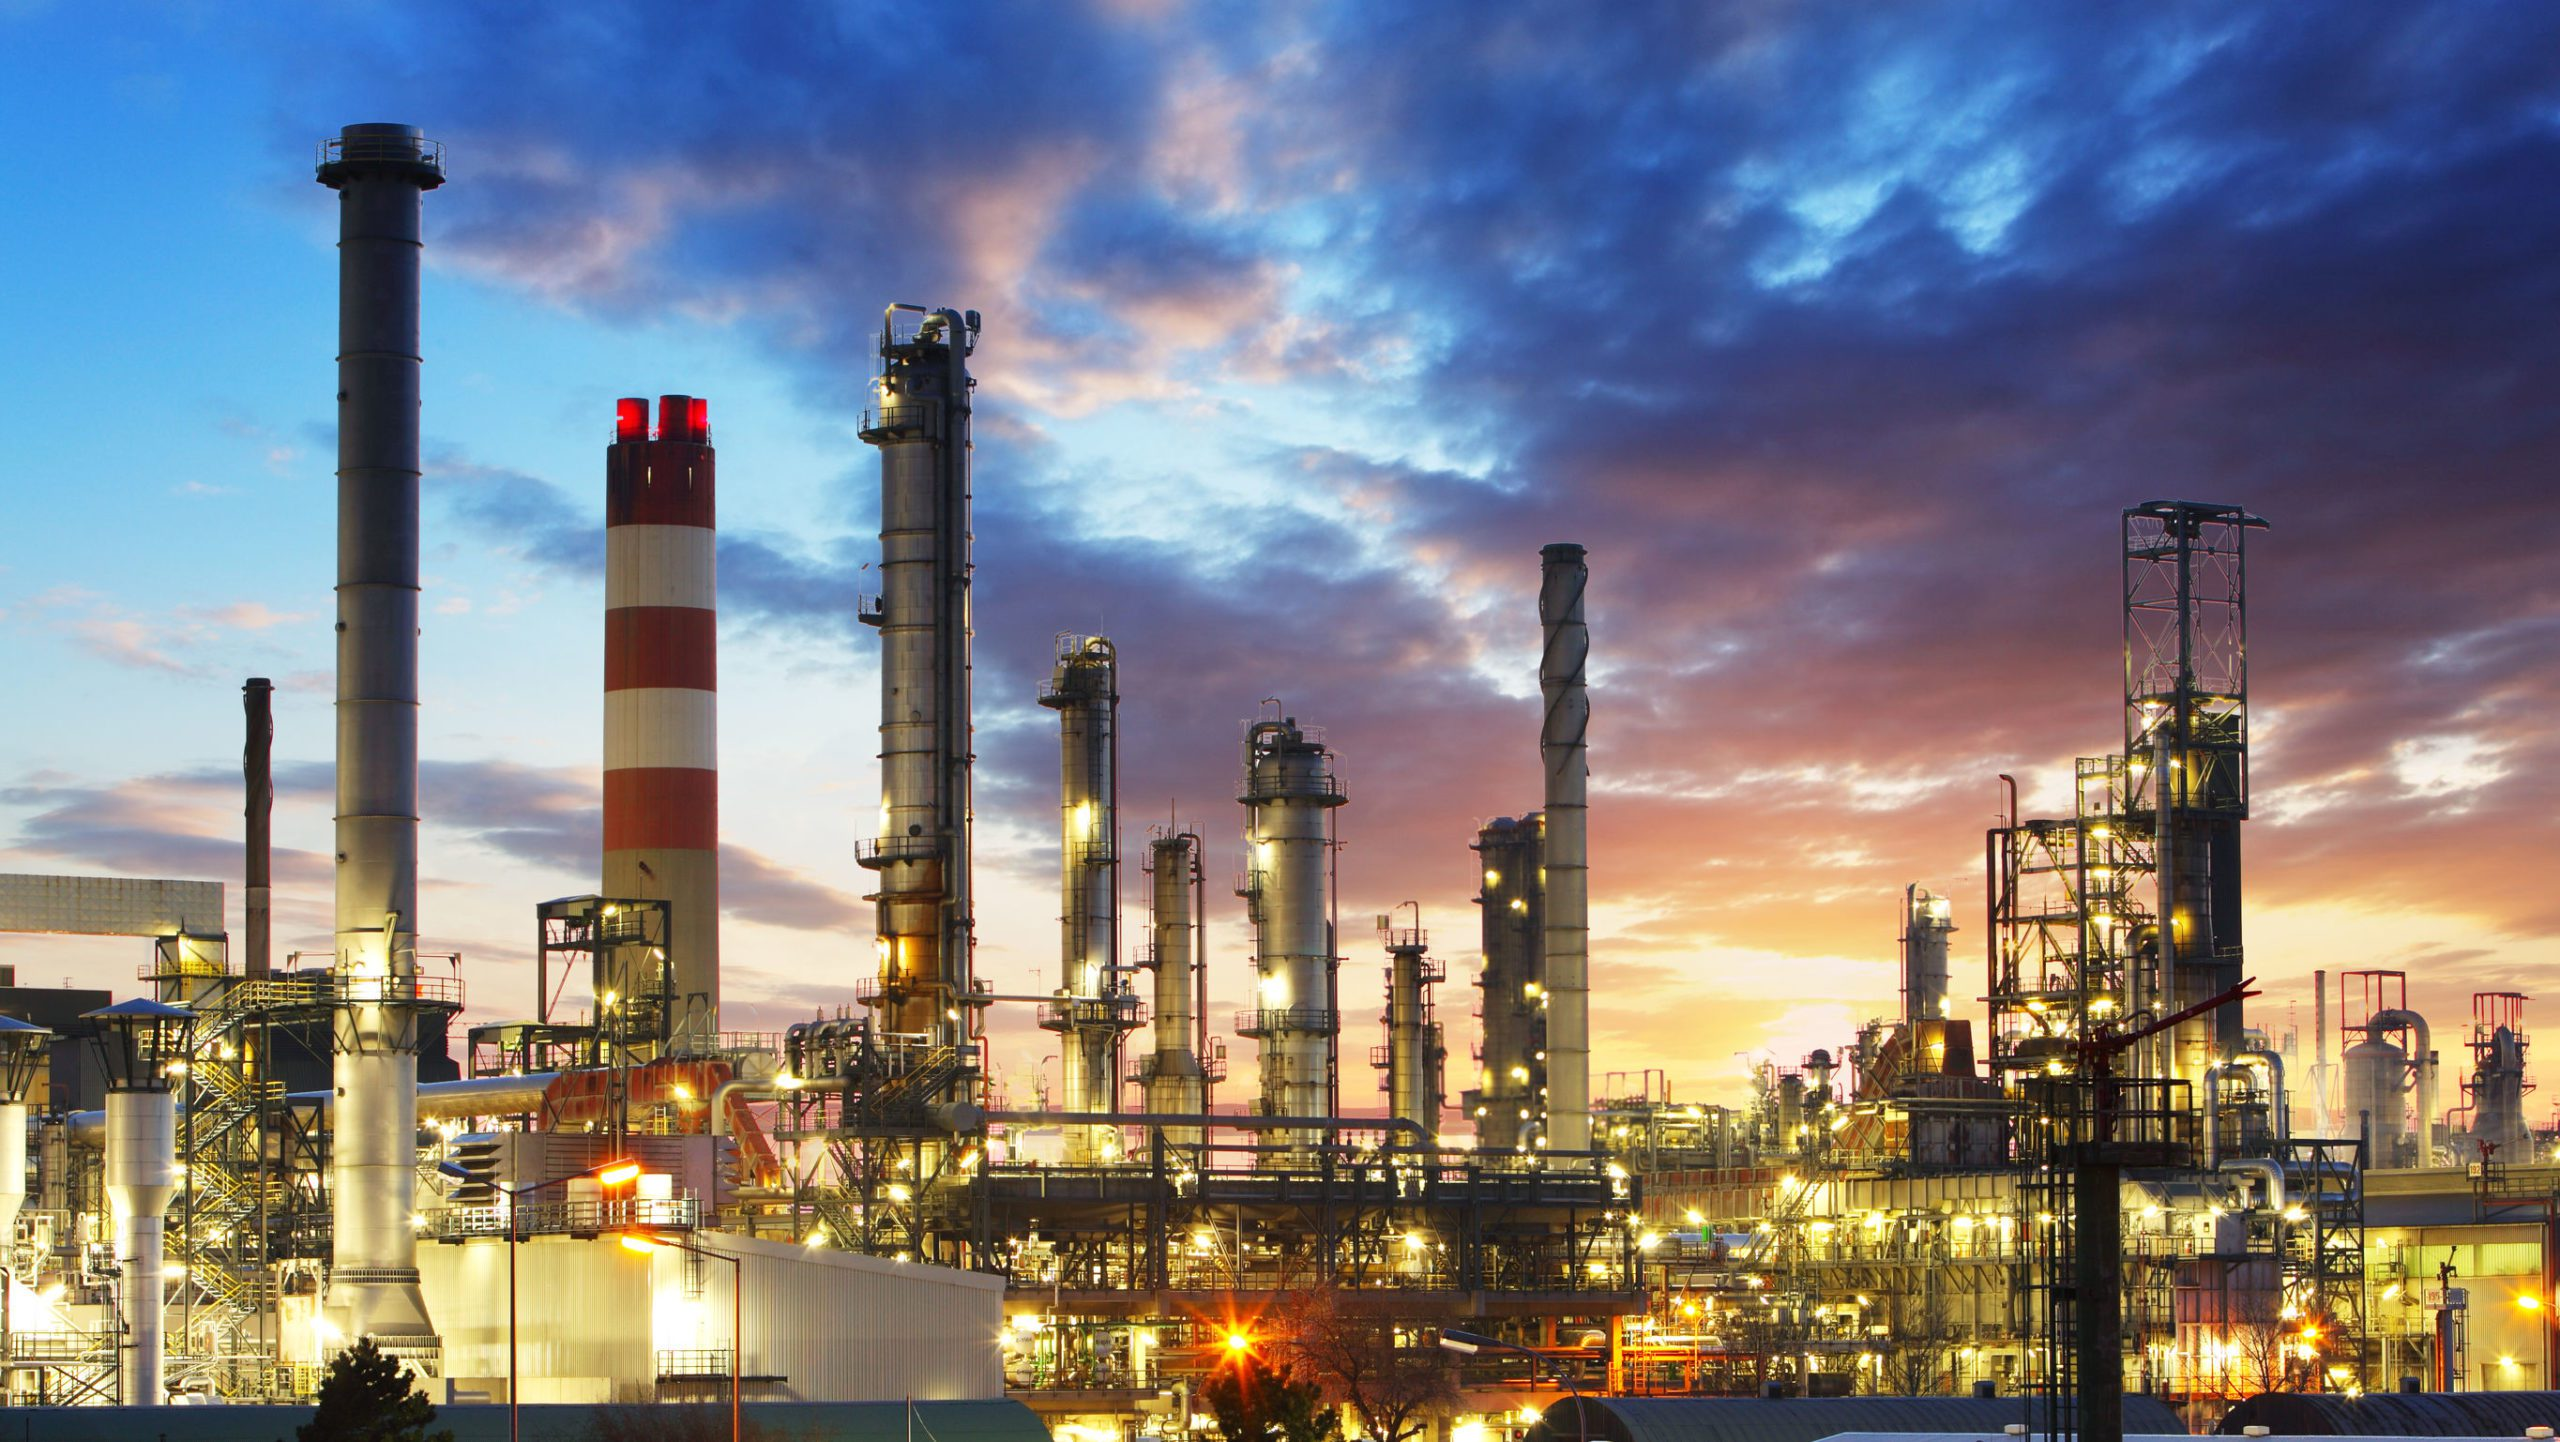 Why Global Refineries Are Focusing on Upgrading and Modernizing Existing Plants